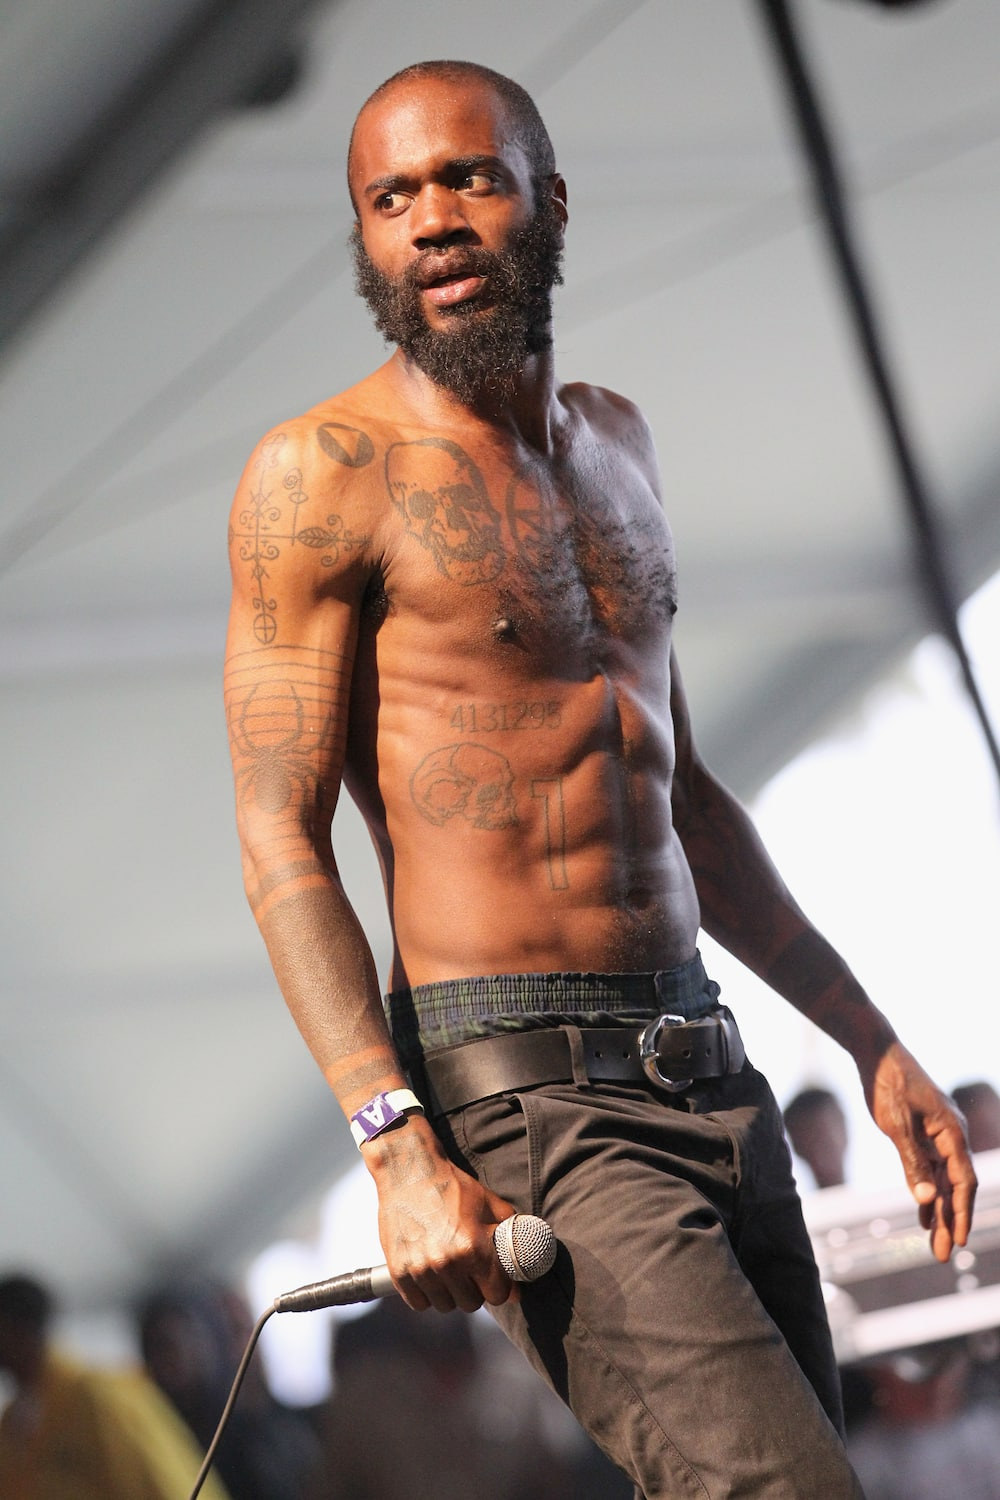 how tall is MC Ride